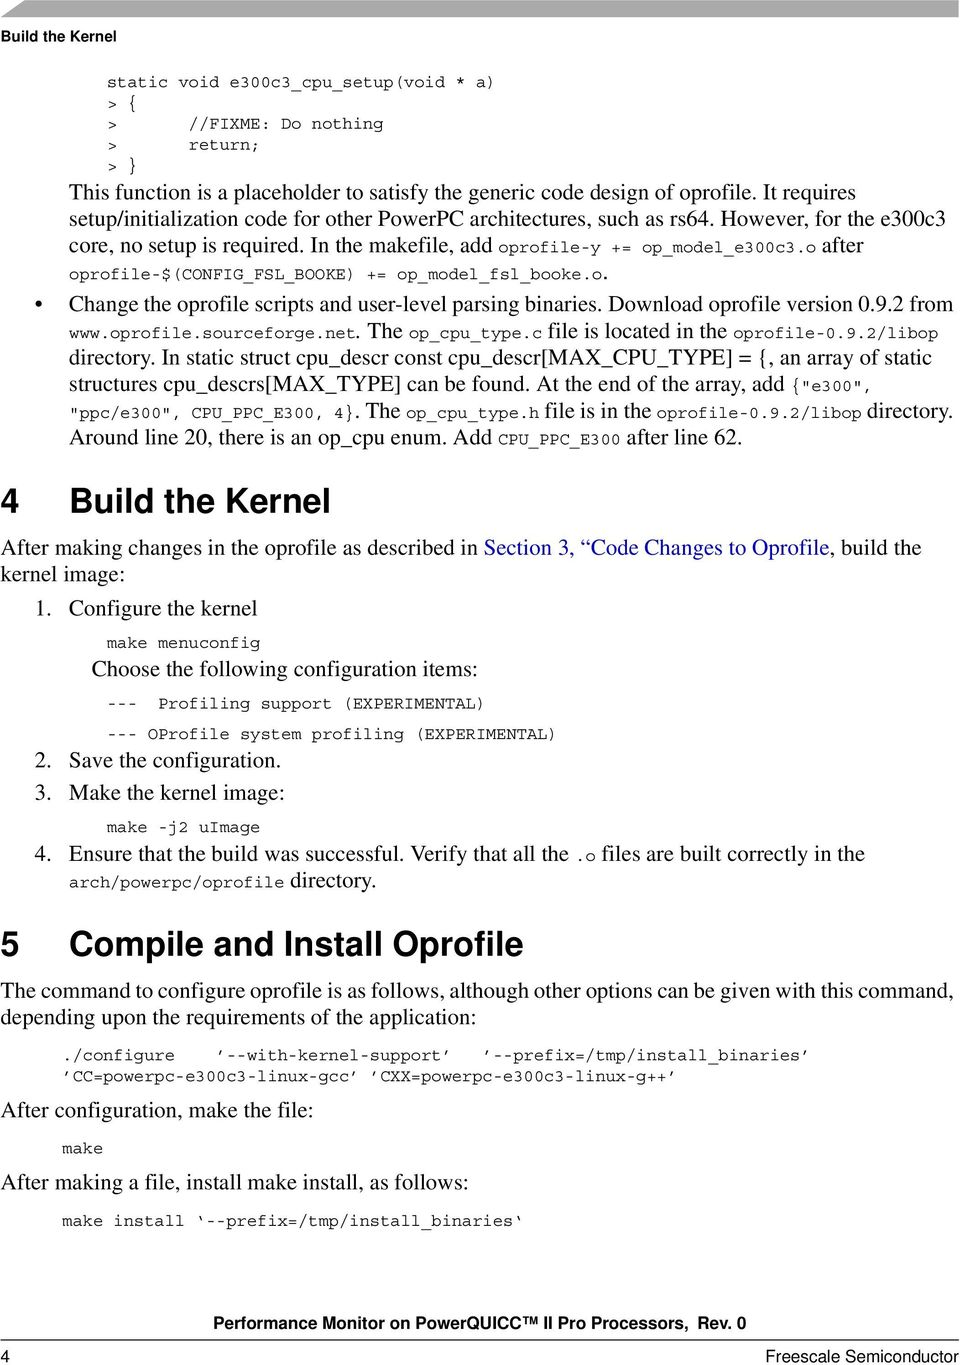 o after oprofile-$(config_fsl_booke) += op_model_fsl_booke.o. Change the oprofile scripts and user-level parsing binaries. Download oprofile version 0.9.2 from www.oprofile.sourceforge.net.